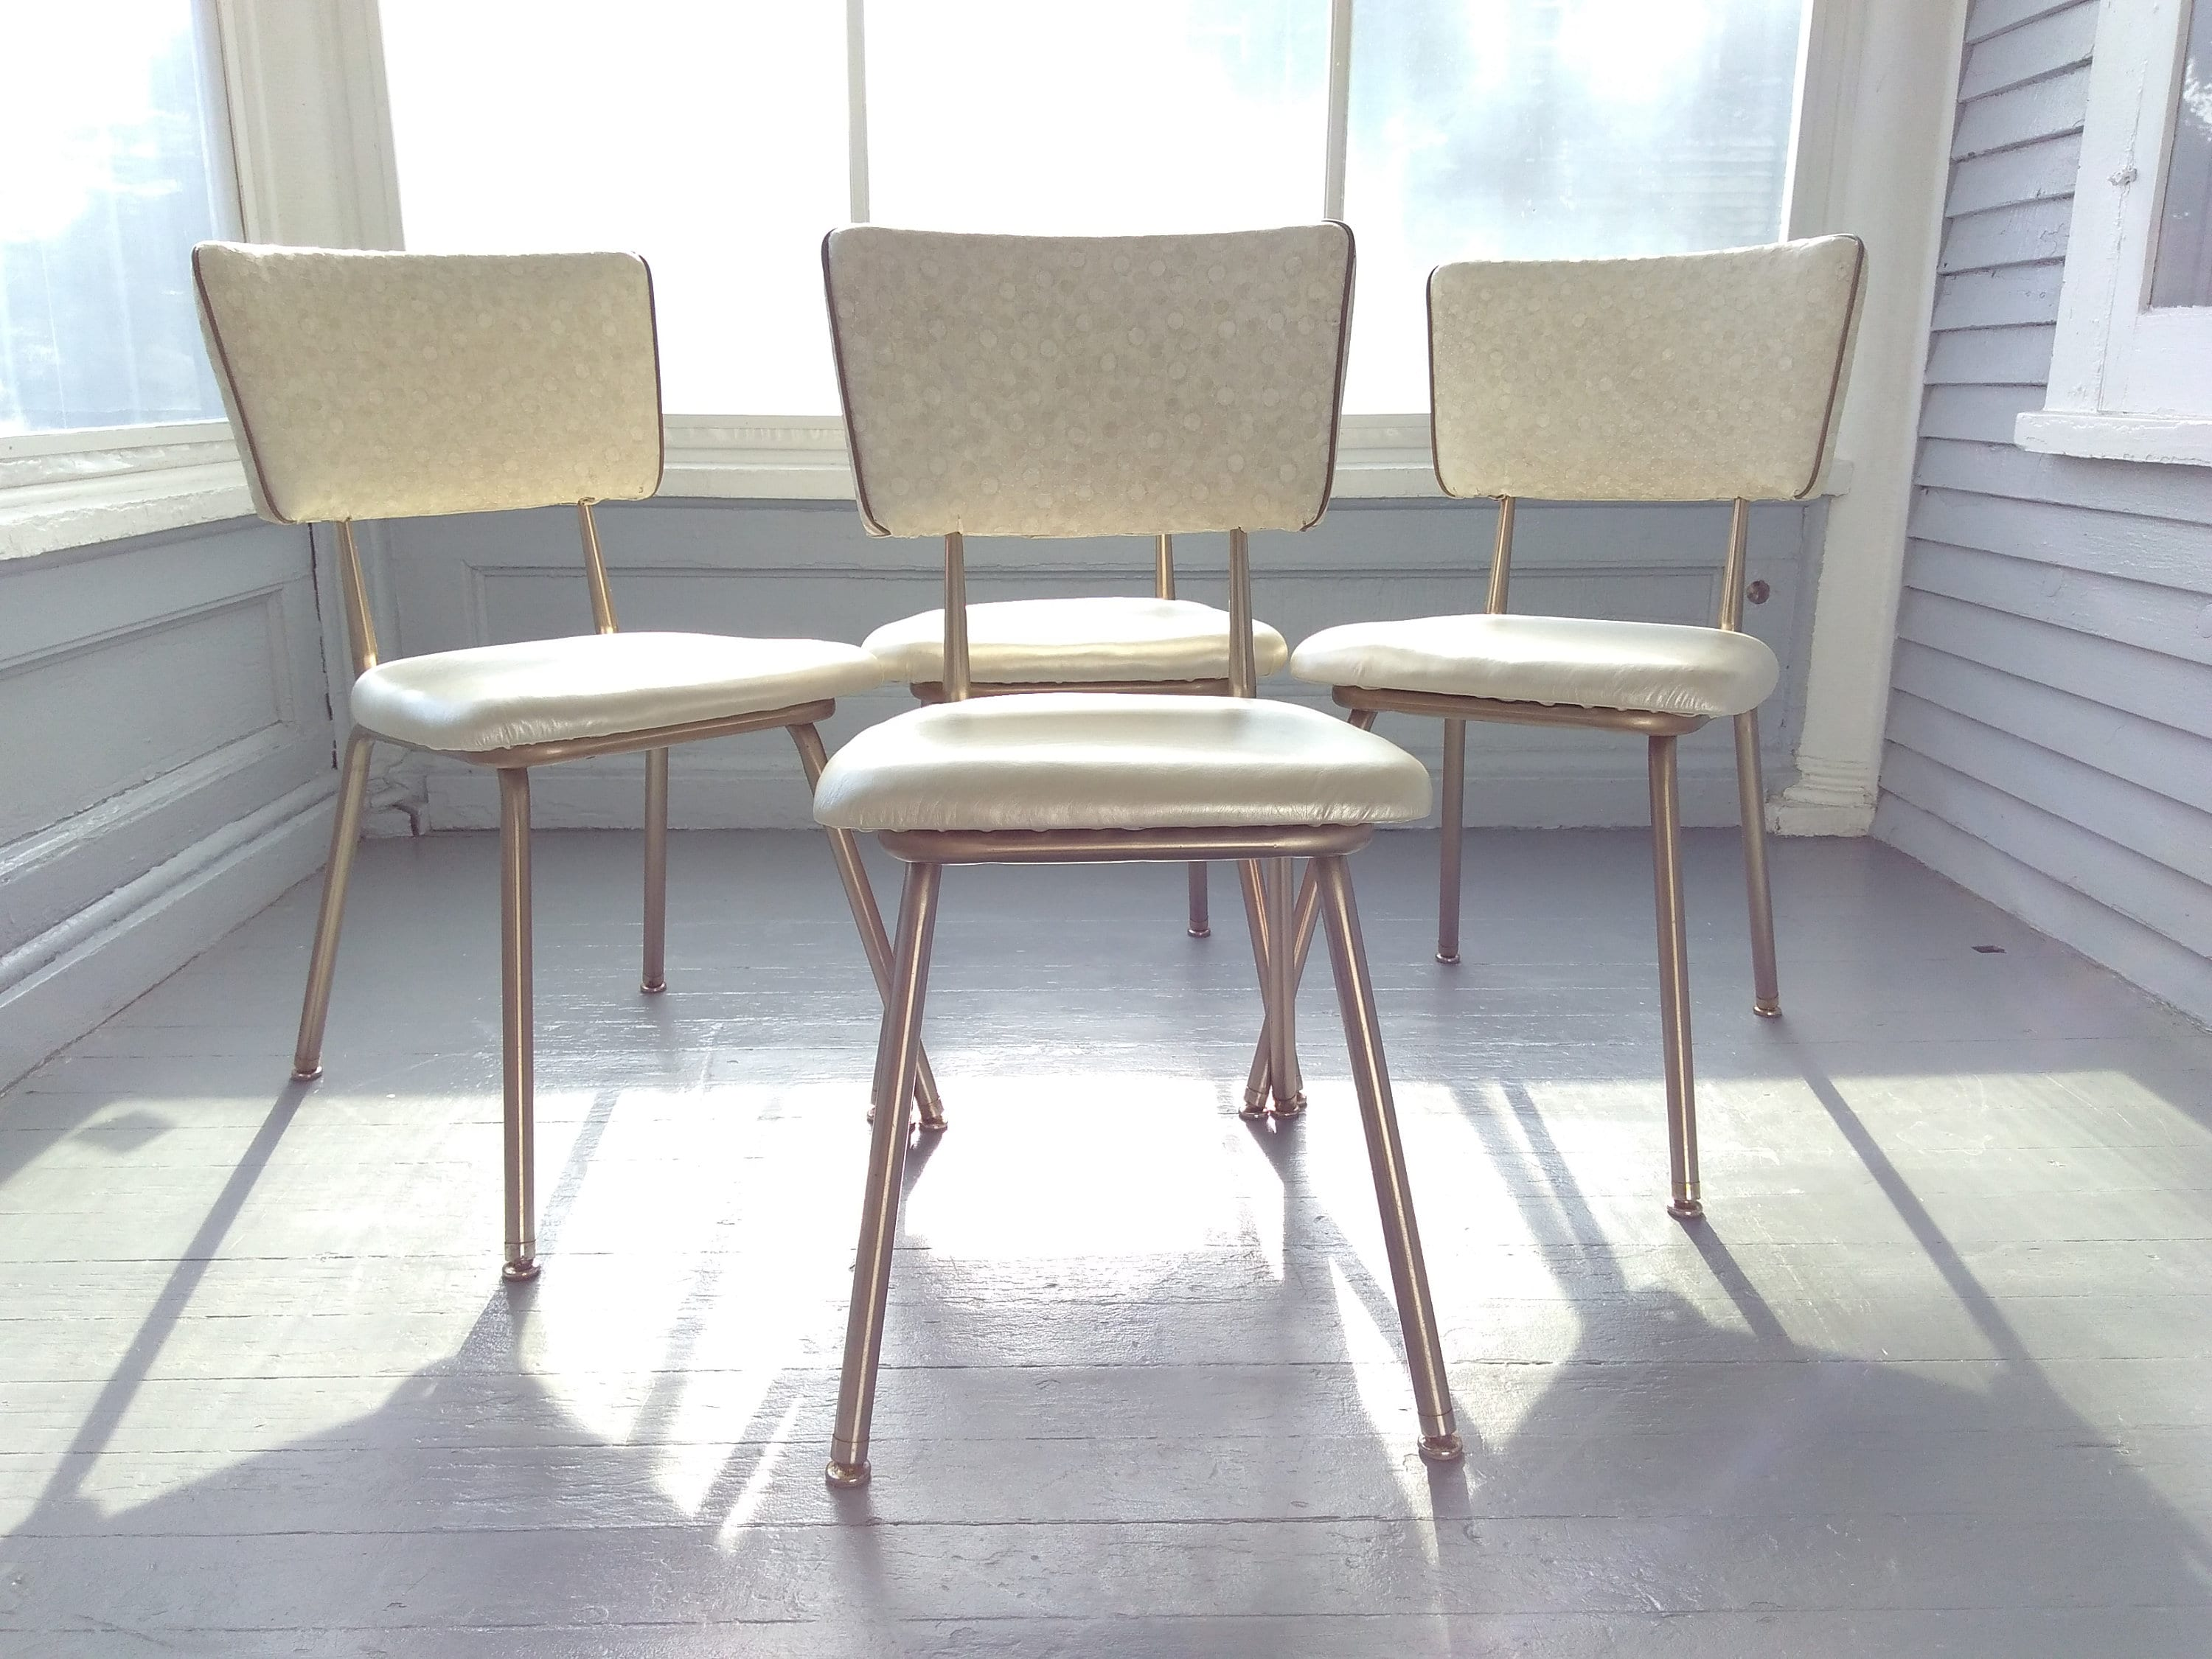 vintage kitchen chairs center island set of four 1960s lloyd mfg co dinette vinyl metal decor rhymeswithdaughter